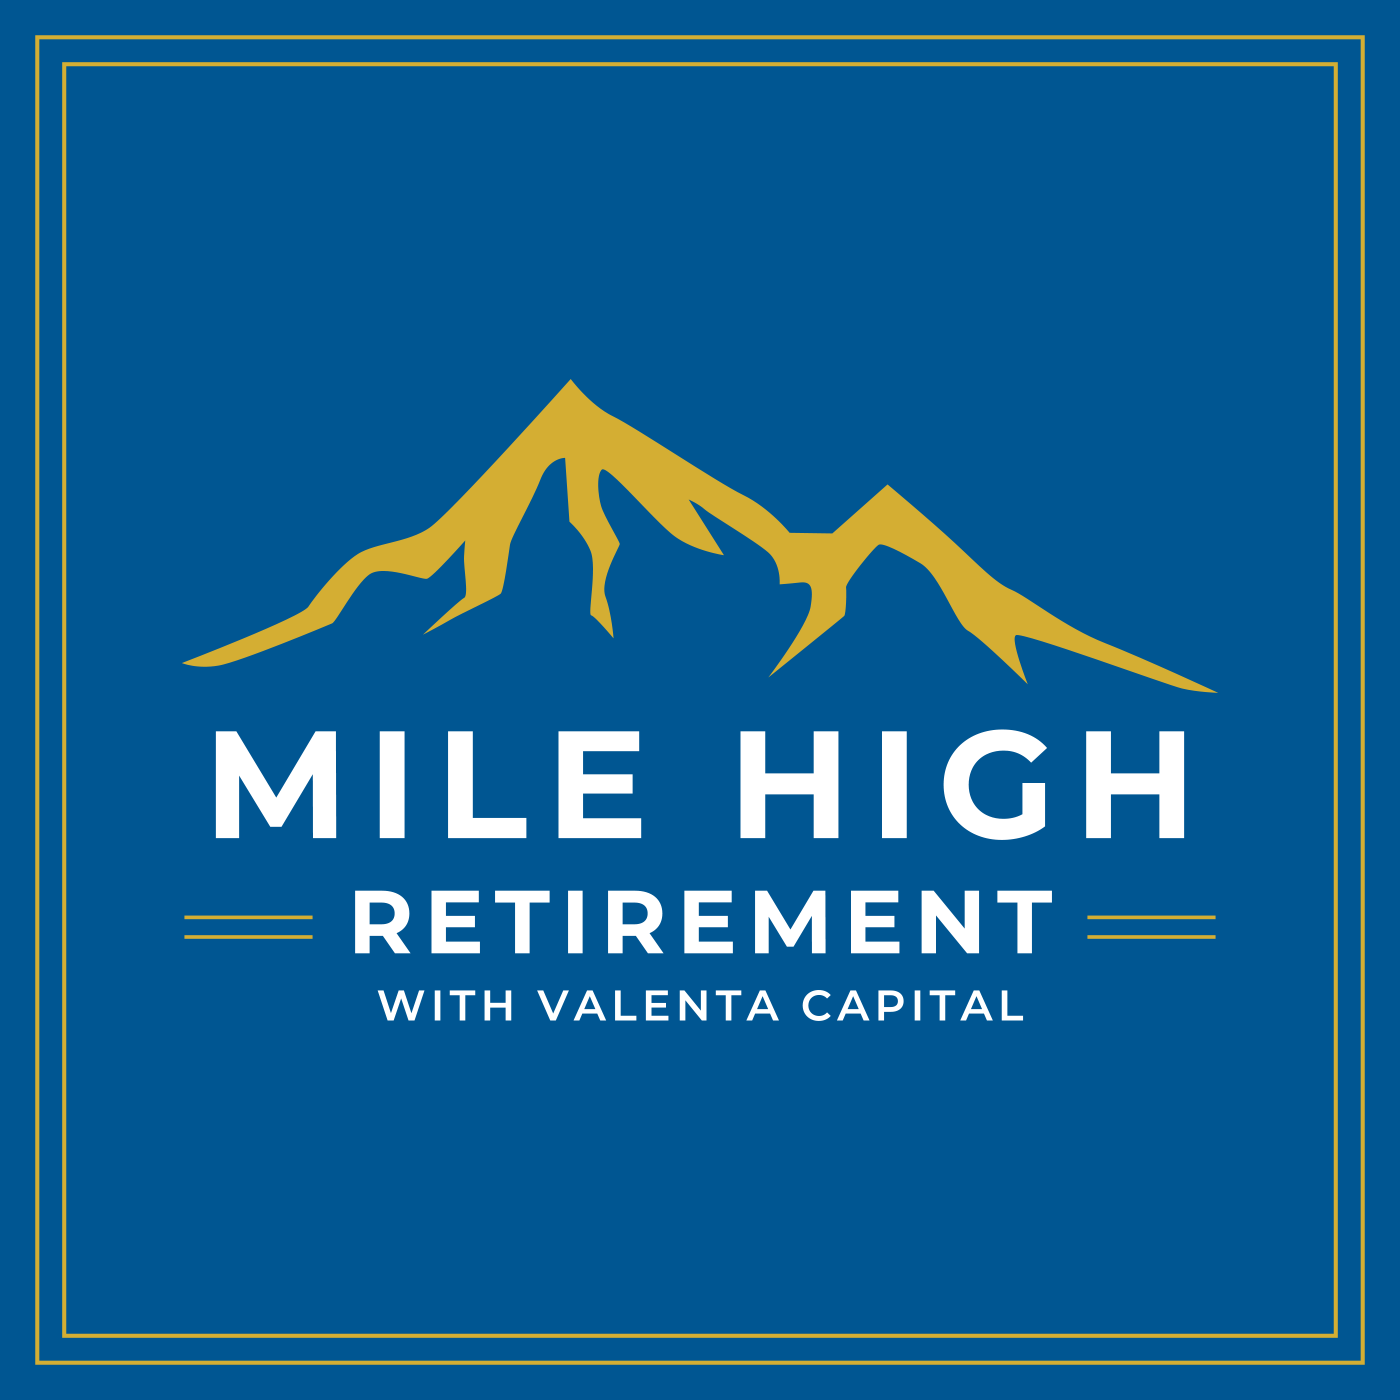 Mile High Retirement